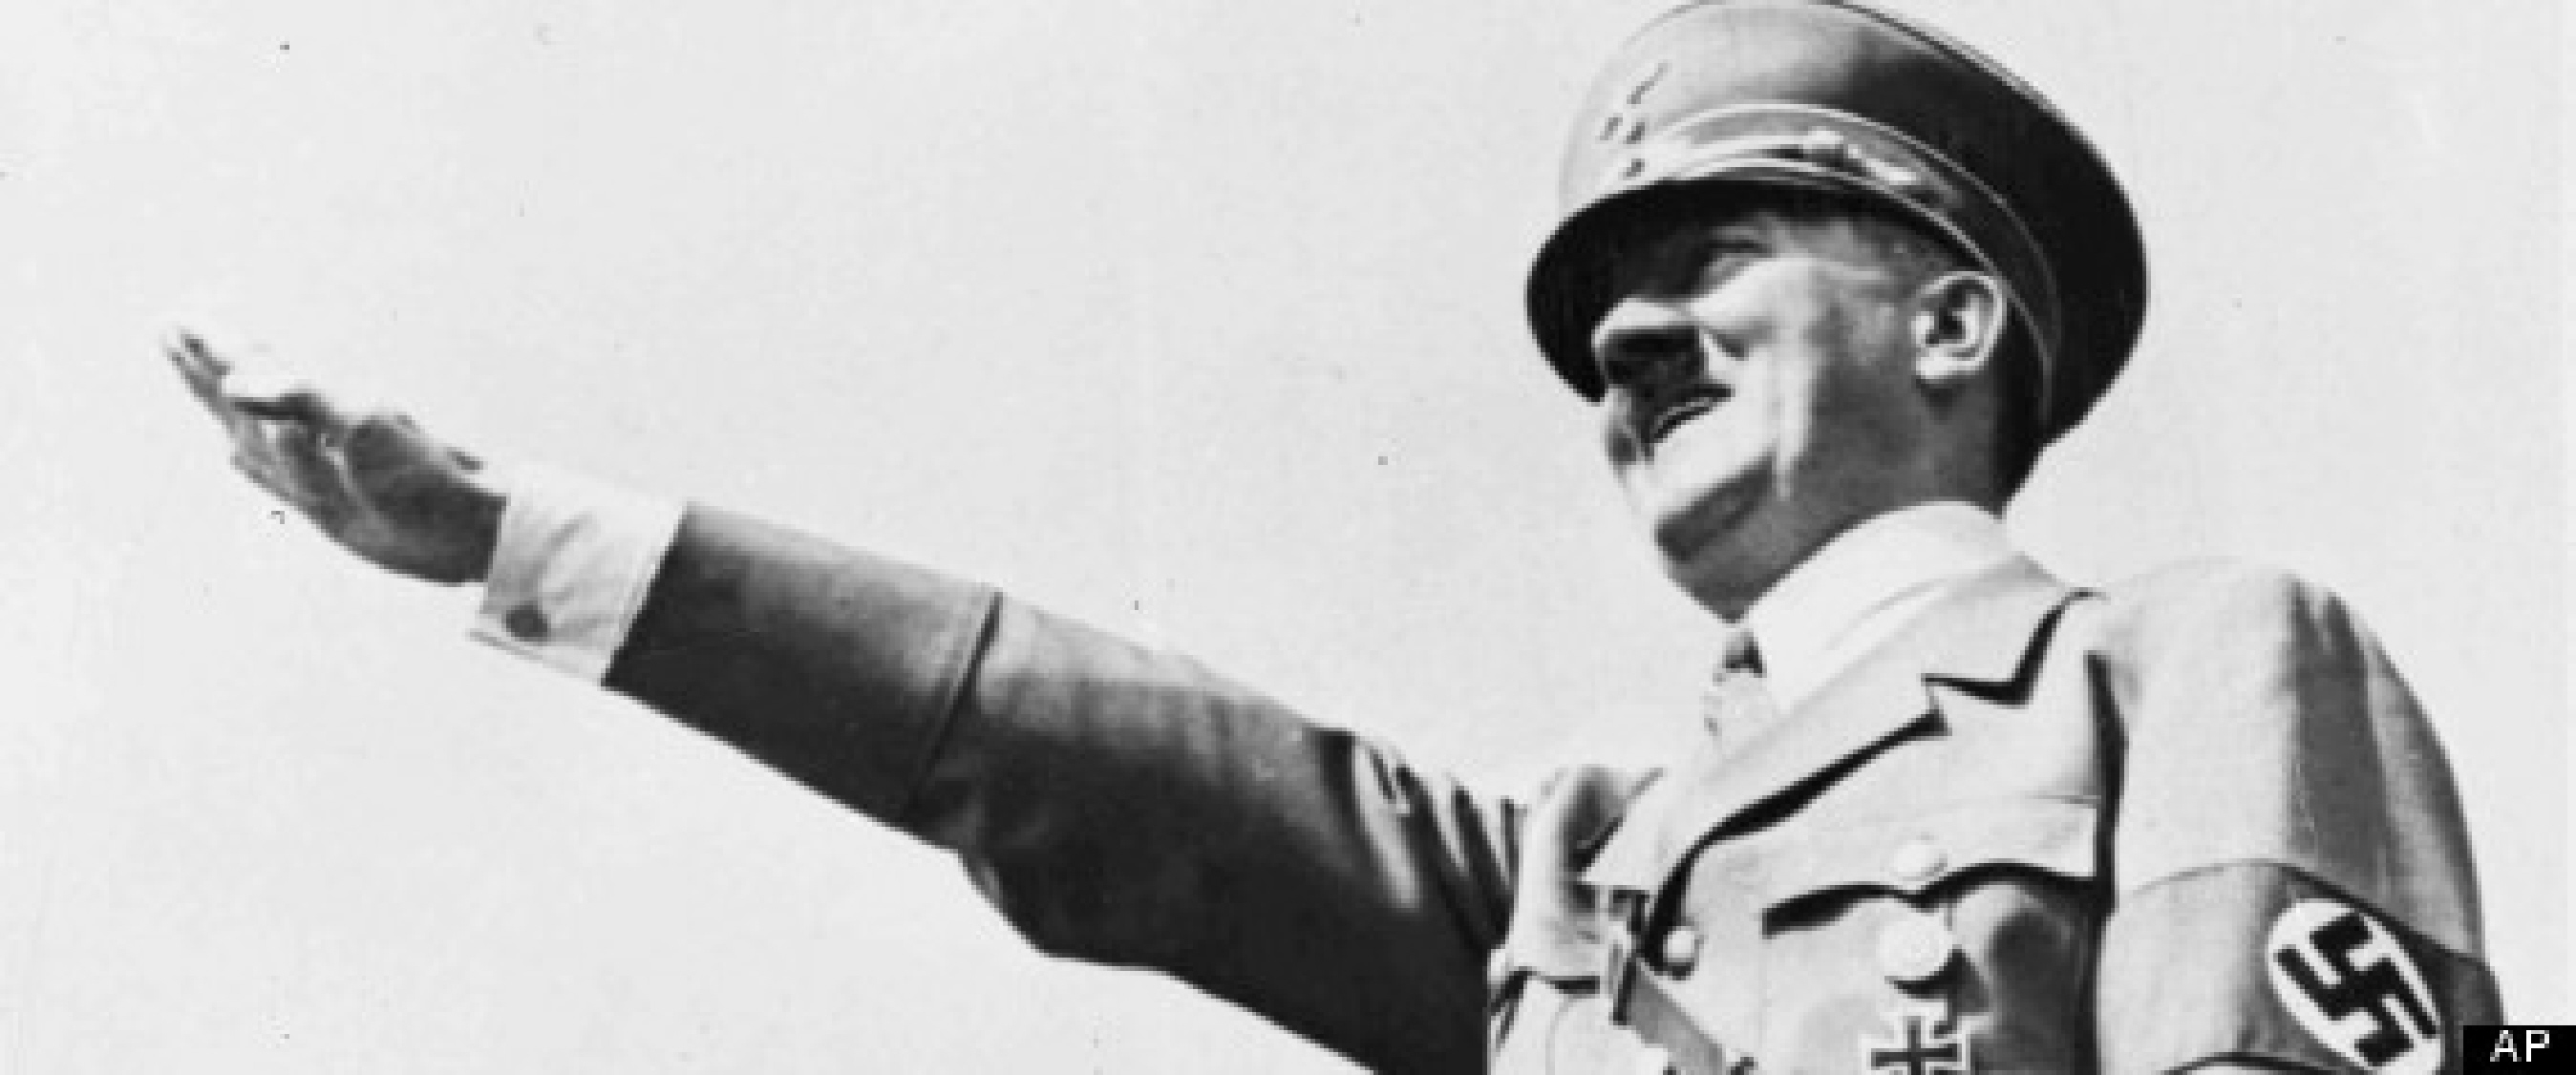 a biography of adolf hitler the nazi leader The crown season 2 alluded to speculation that edward viii, queen elizabeth's uncle, and his wife wallis simpson were nazi sympathizers and friends of adolf hitler.